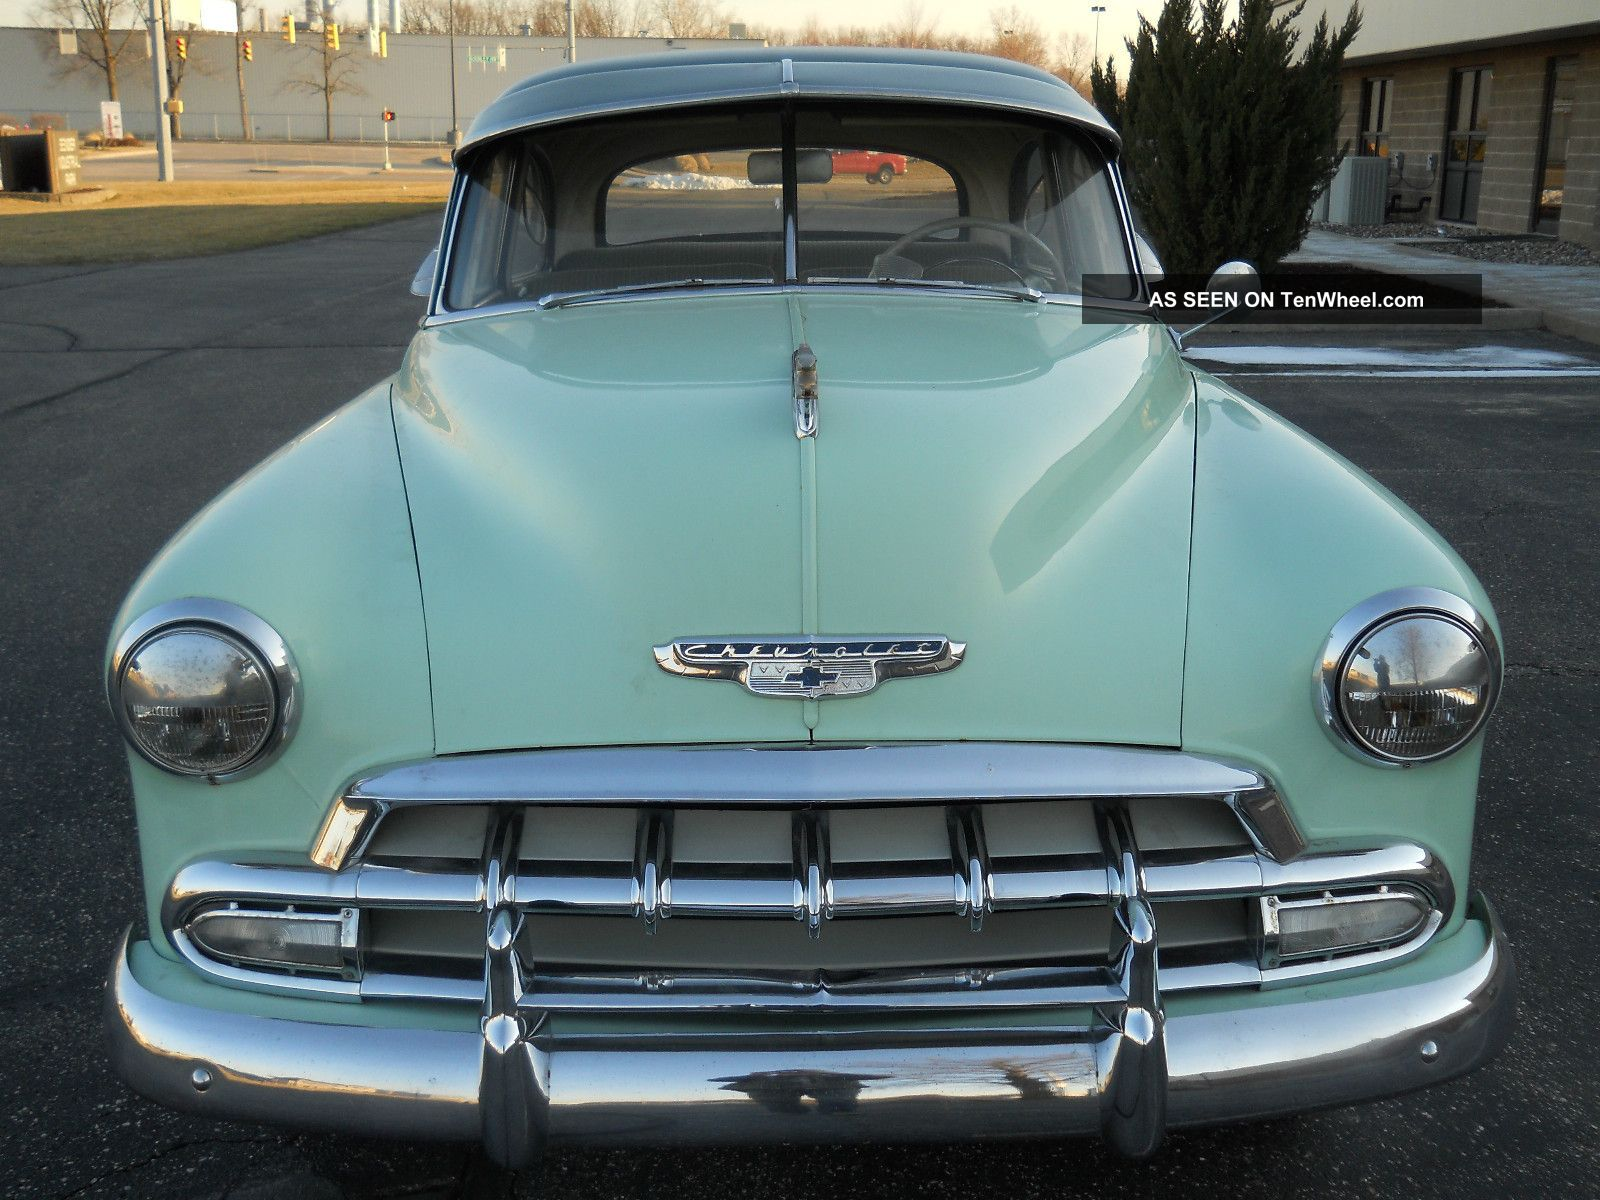 Chevy Deluxe Excellent Unrestored Condition Garage Kept Tennessee Car Lgw